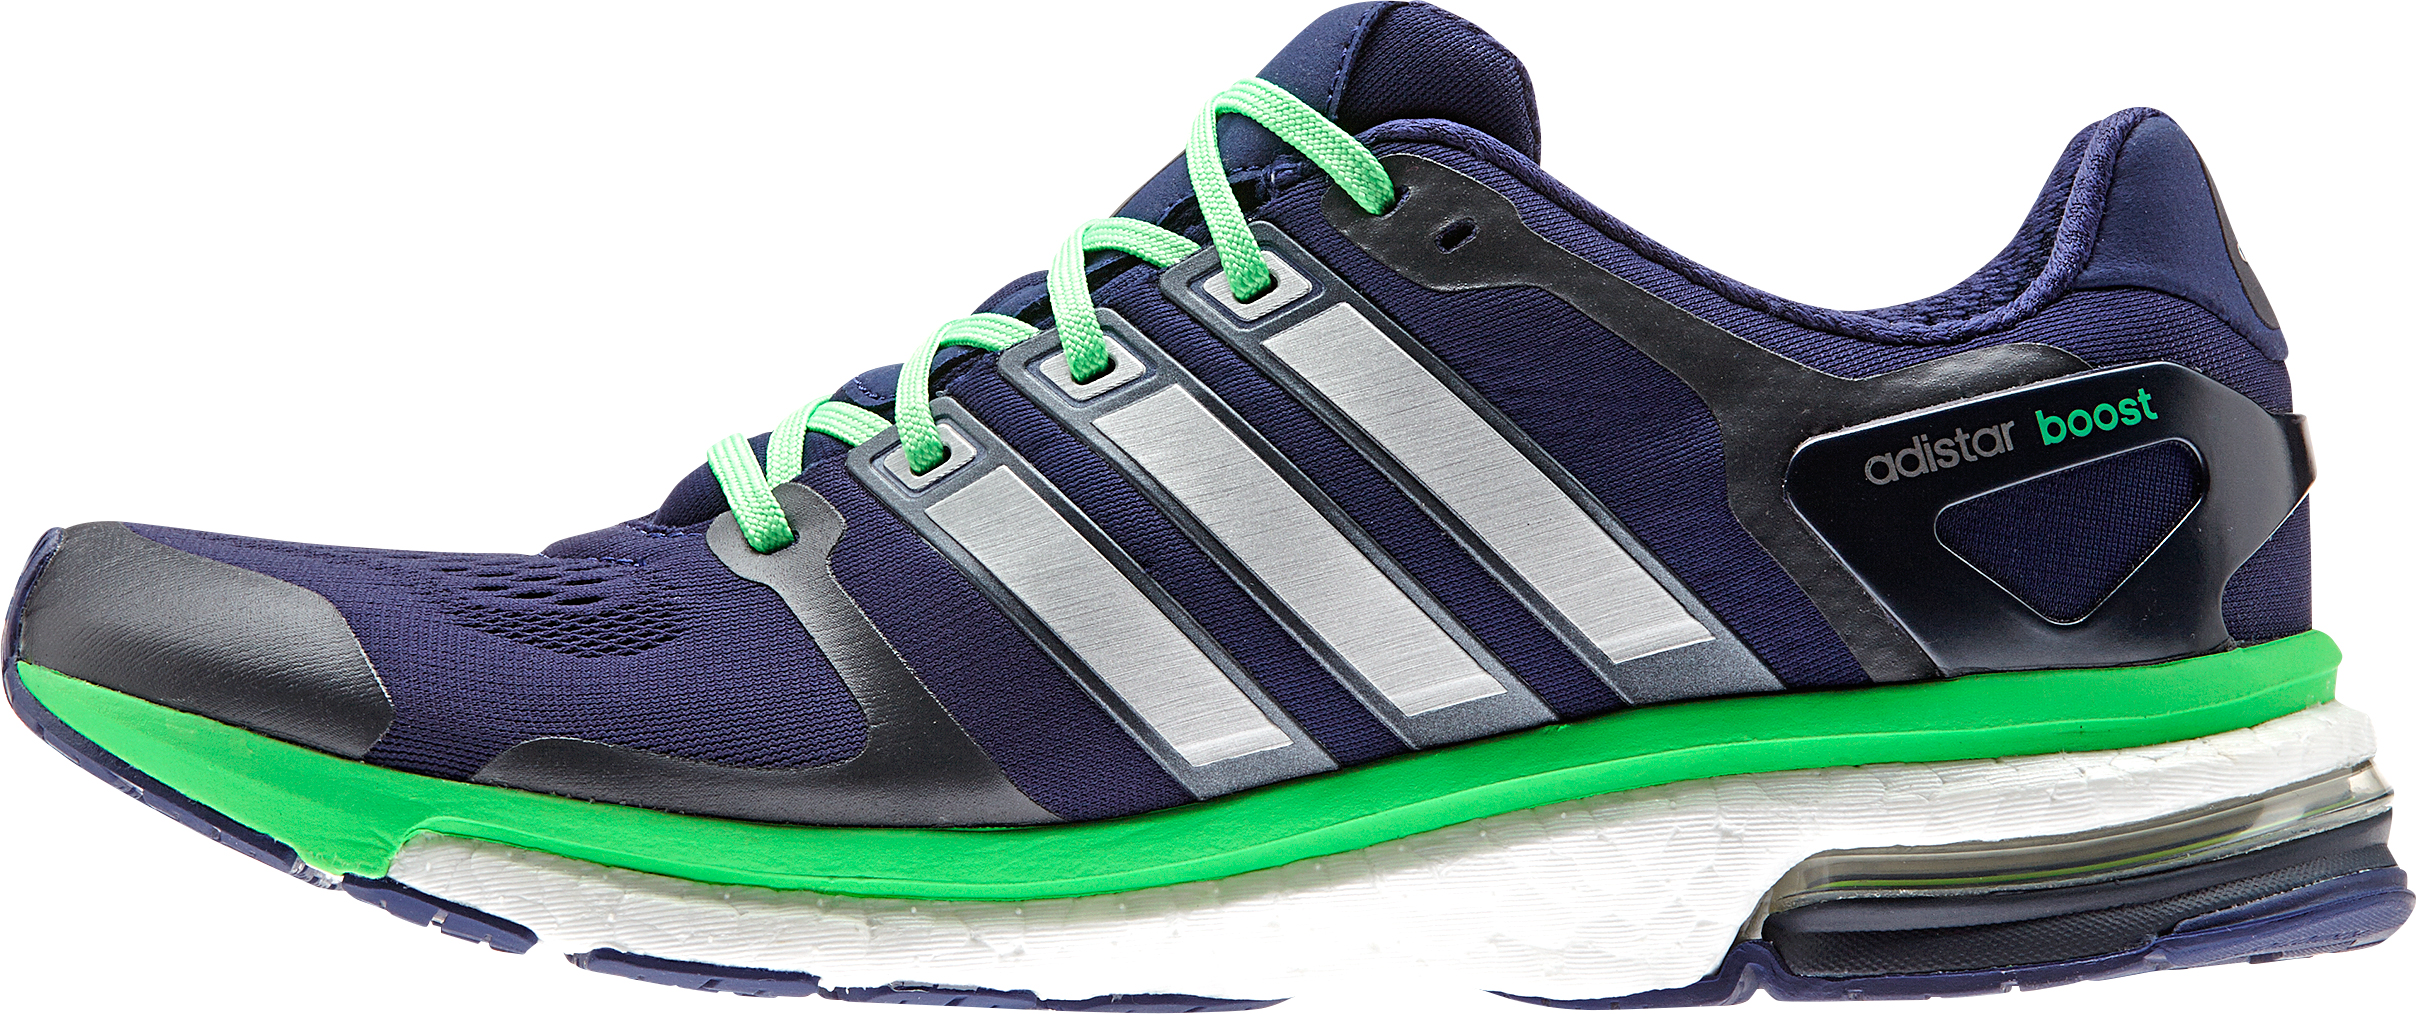 De Esm Adistar Adidas Shoes Boost Chaussures aw15 Running nzqUxq7